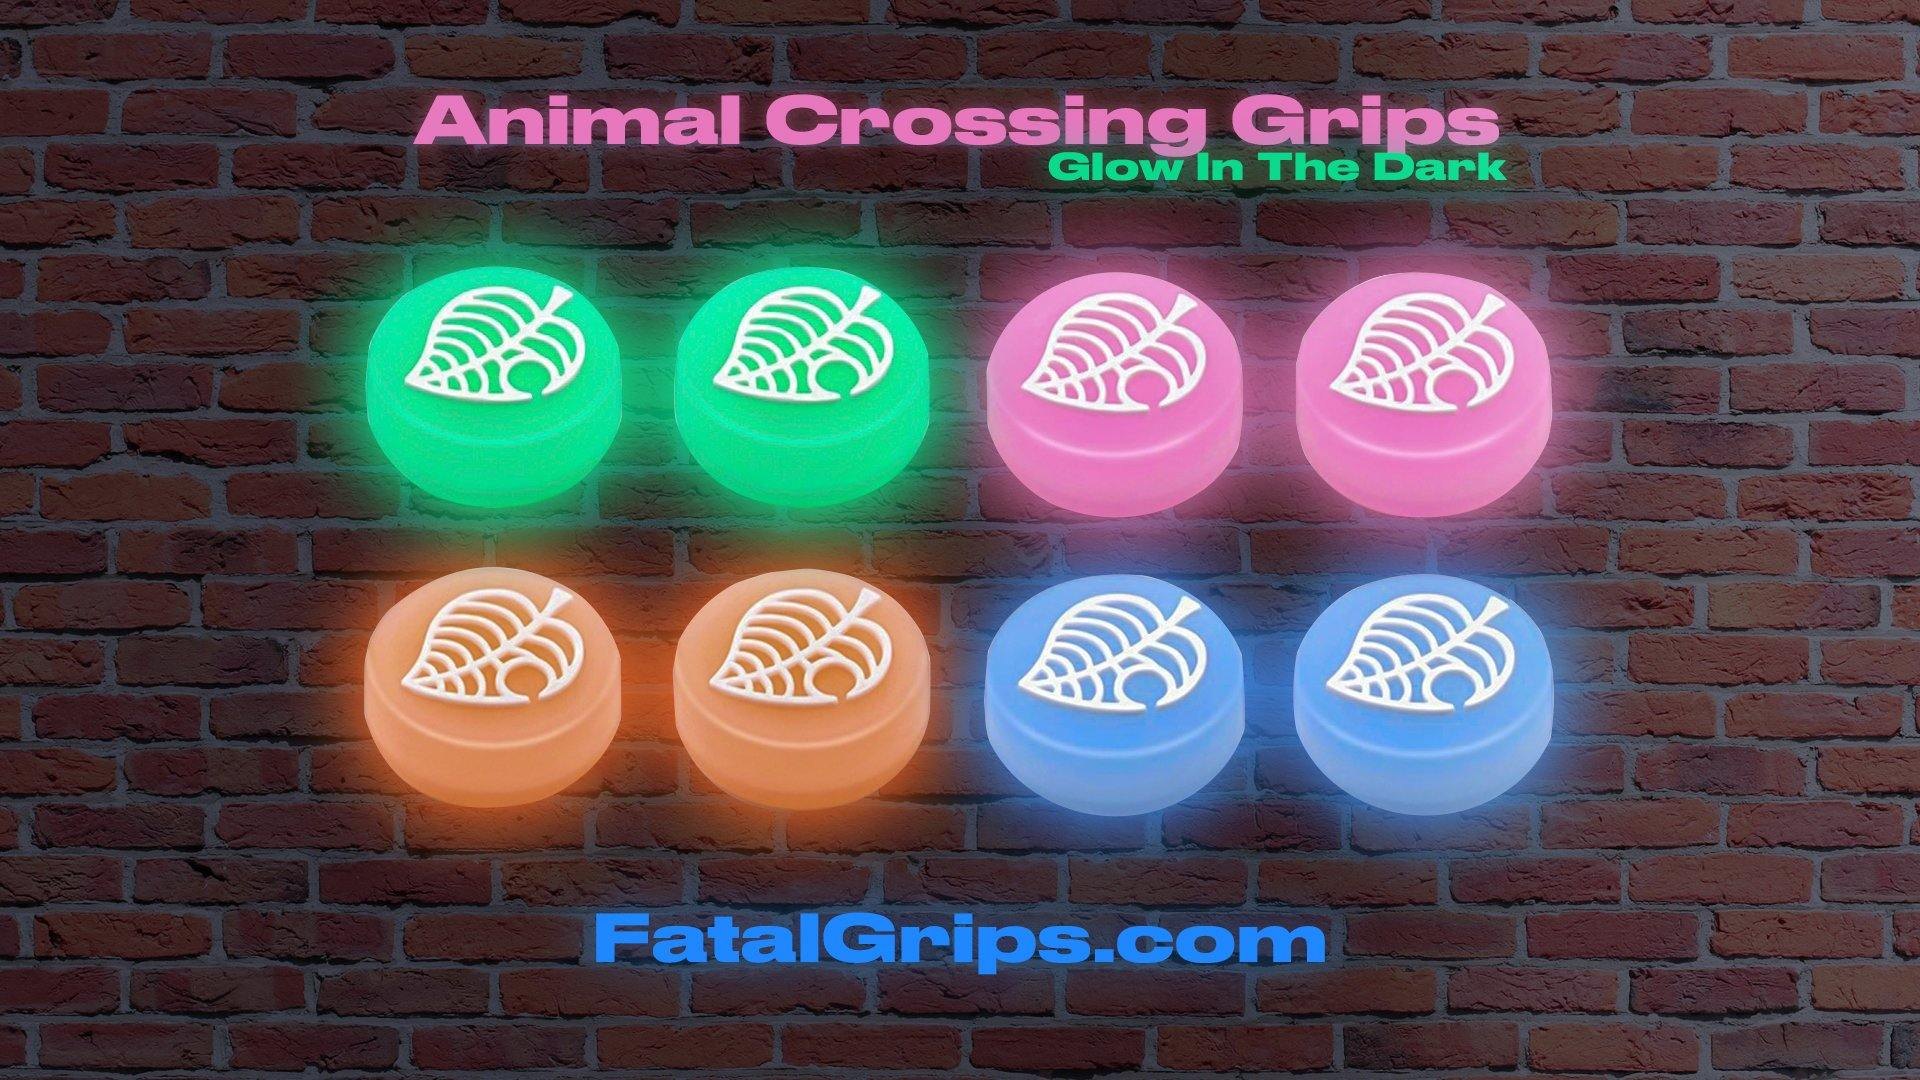 Animal Crossing Glow In The Dark Grips - Fatal Grips